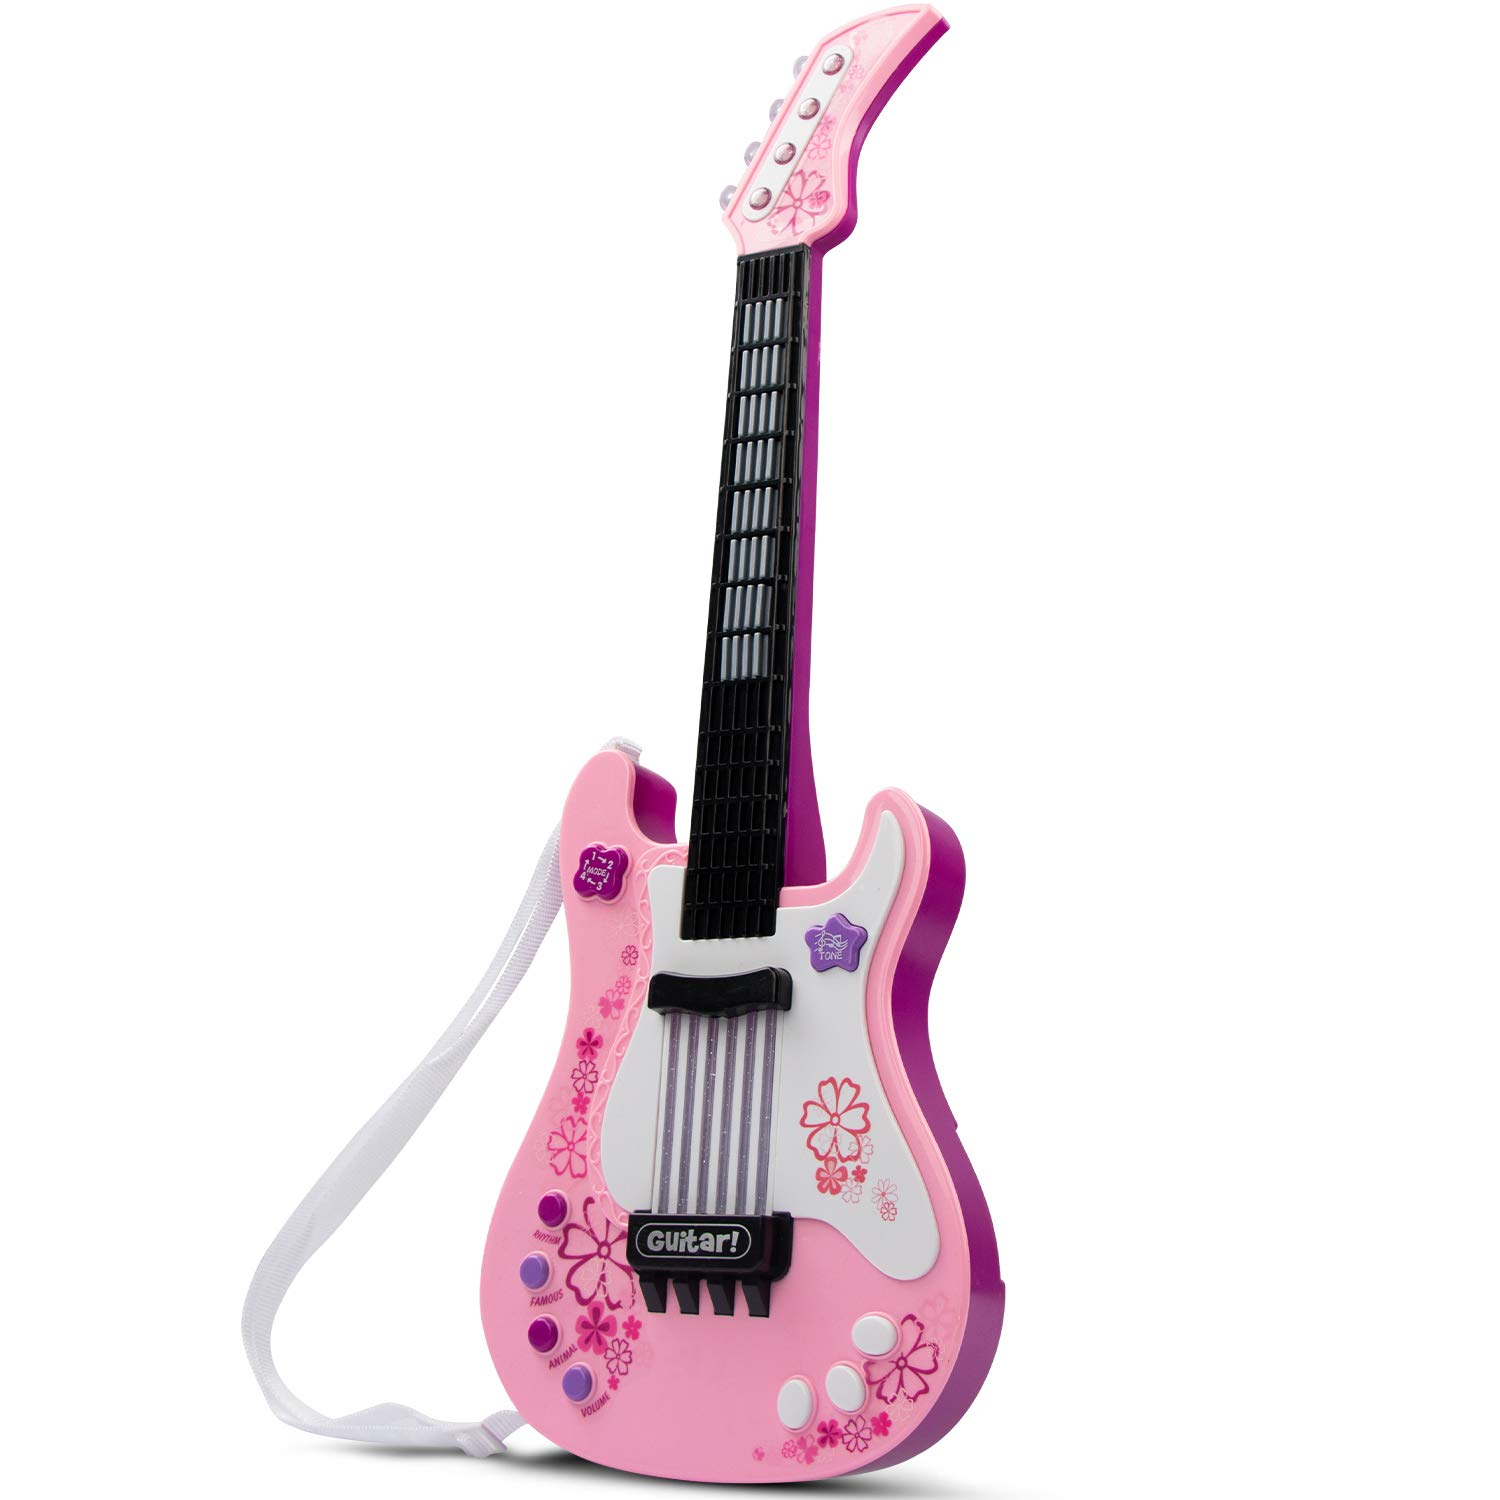 SAOCOOL Kids Guitar, Electric Guitar for Girls with Colored Lights Effect, No String Multifunction Musical Guitar Educational Toy for Girls and Boys (Pink) by SAOCOOL